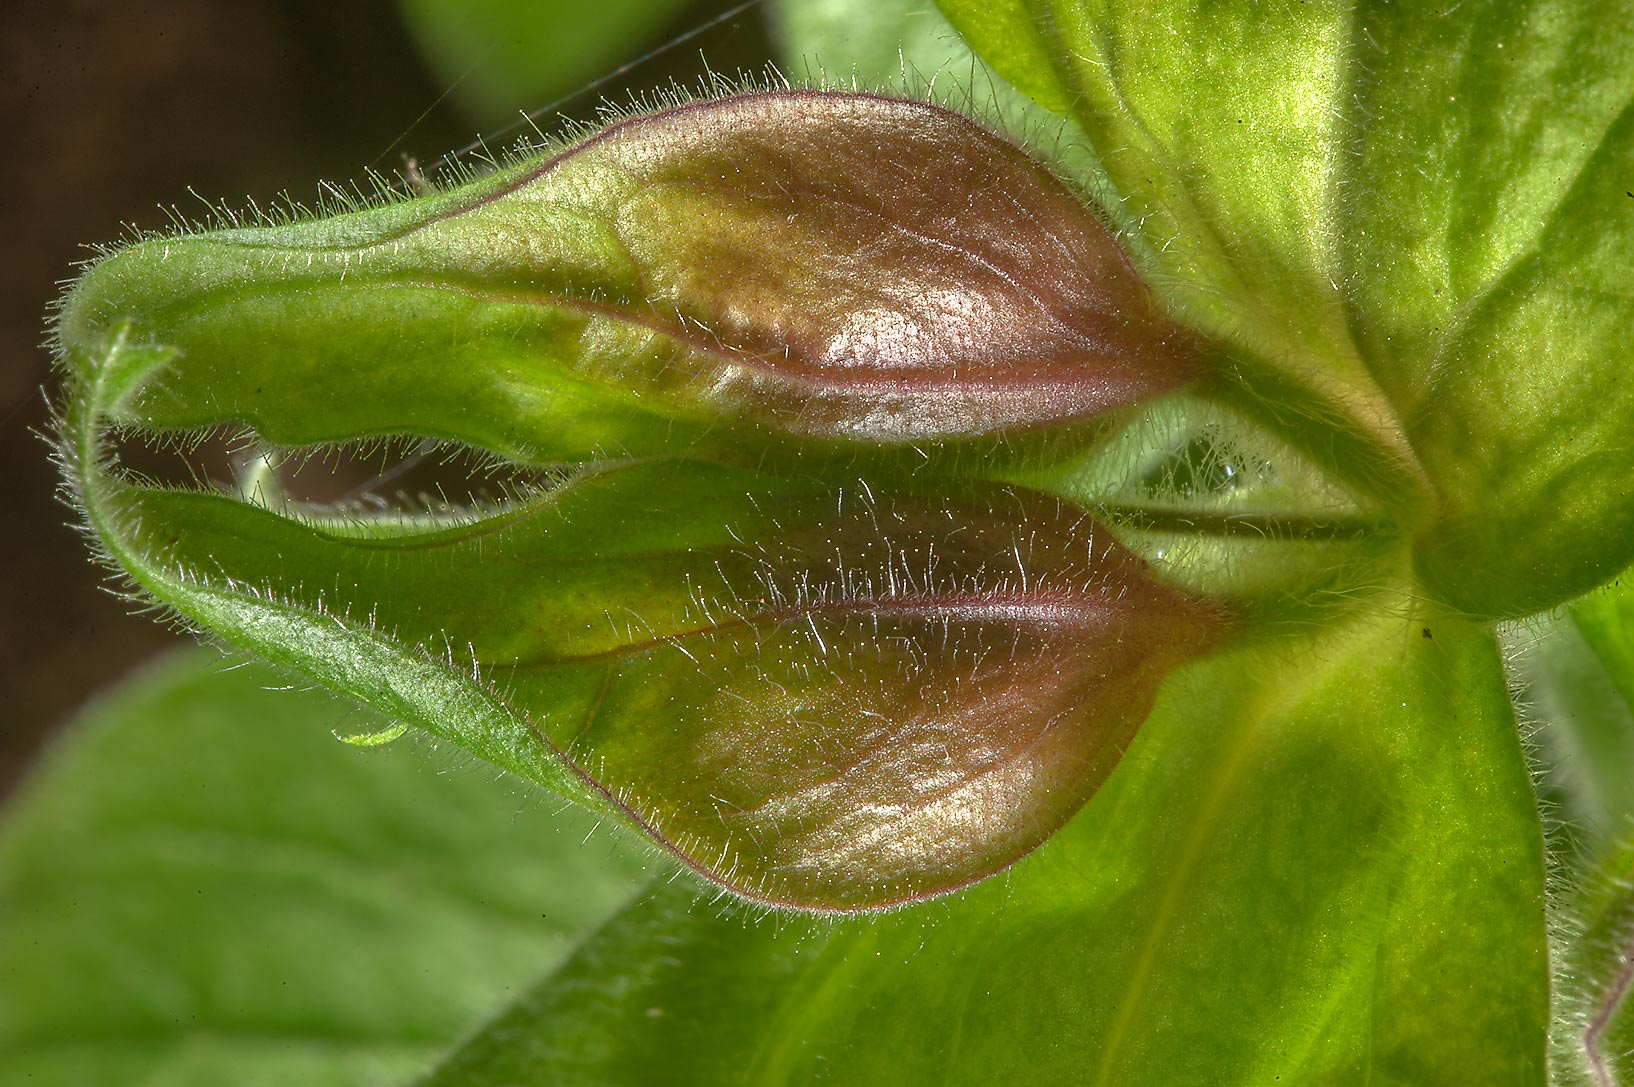 Flower buds of lungwort (Pulmonaria) in Dubki...a suburb of St.Petersburg, Russia